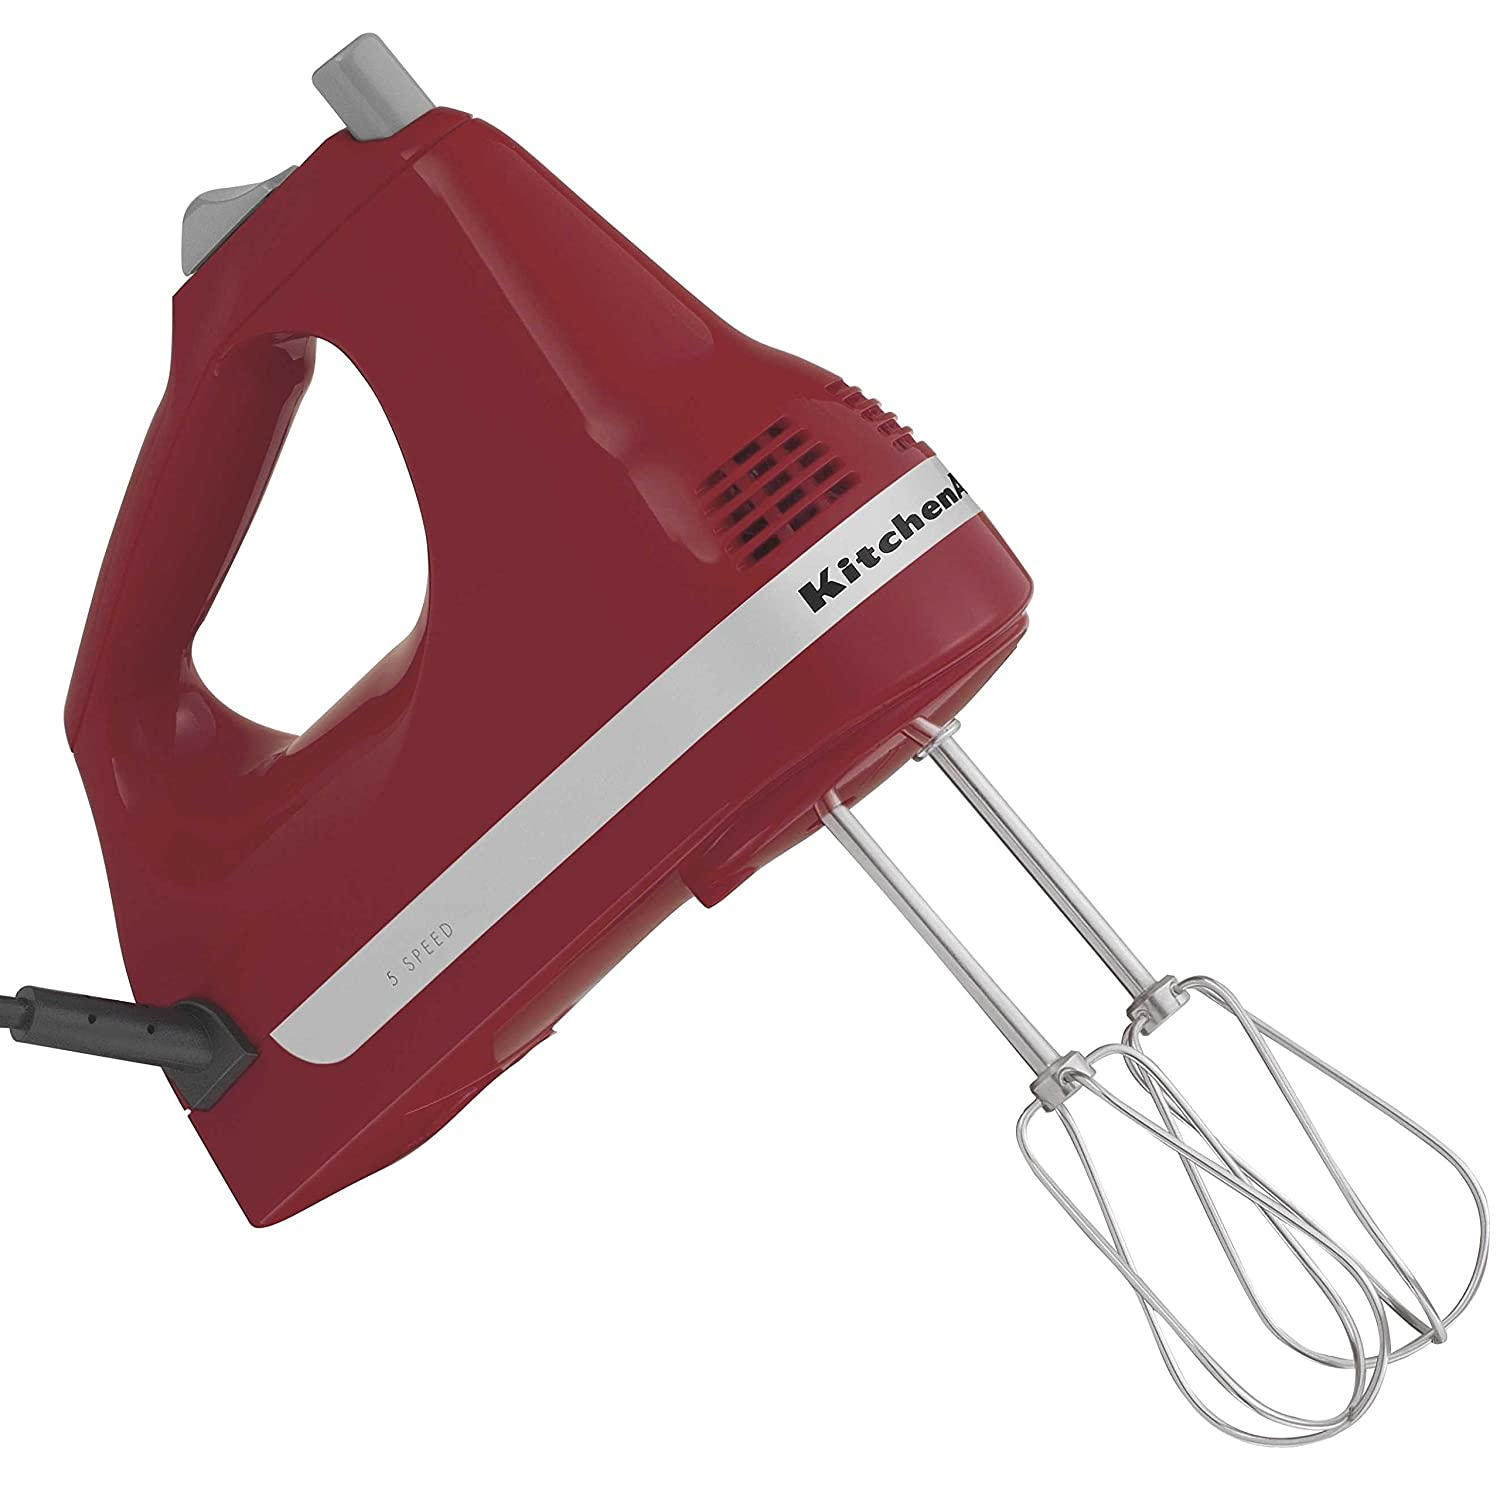 Electric Hand Held Blender ~ Cambodia forums view topic where to buy in pnh a